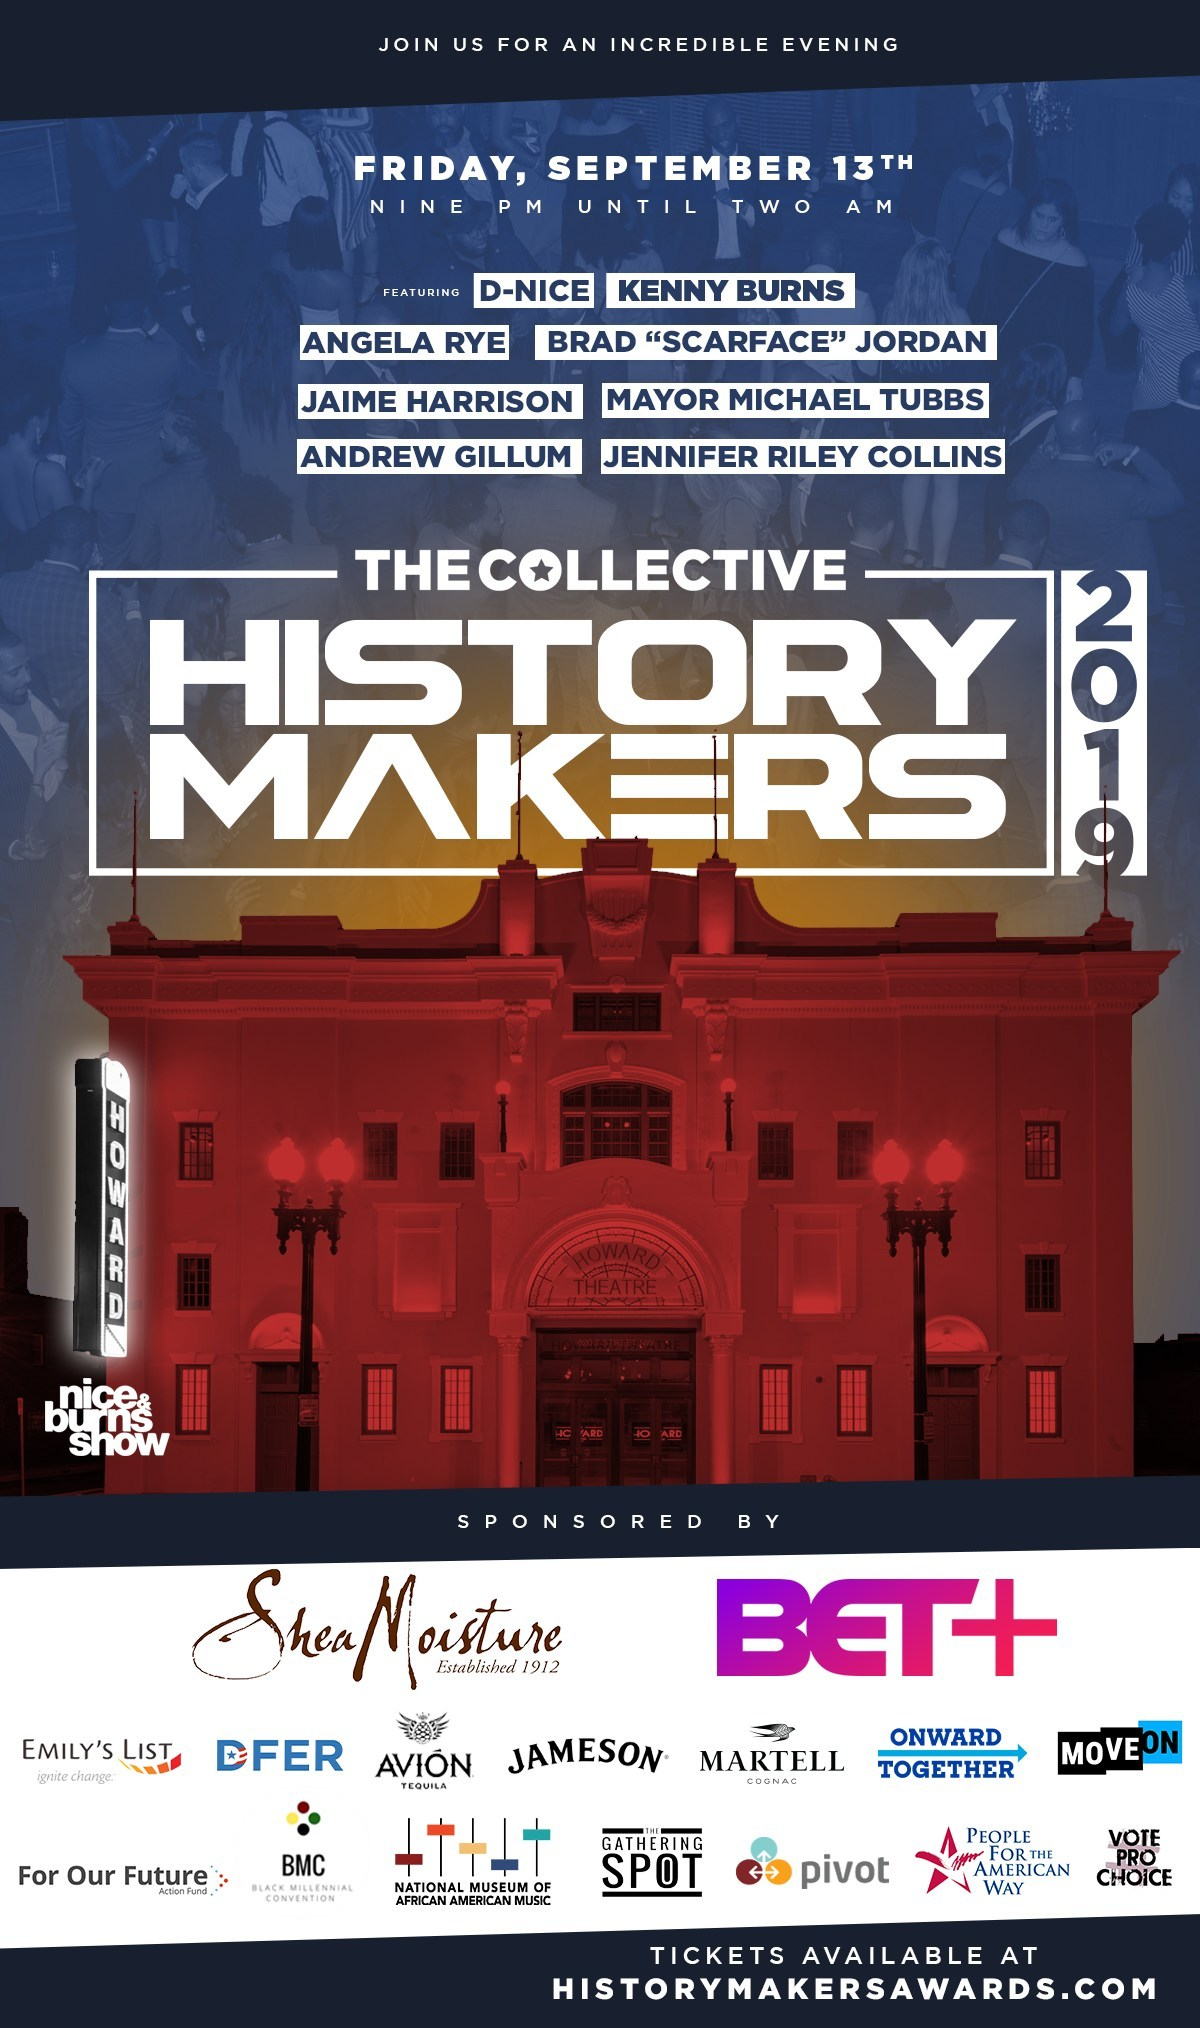 The Collective's 3rd Annual History Makers Award Reception Honors Black History Makers in Politics, Public Policy, The Arts & Entertainment